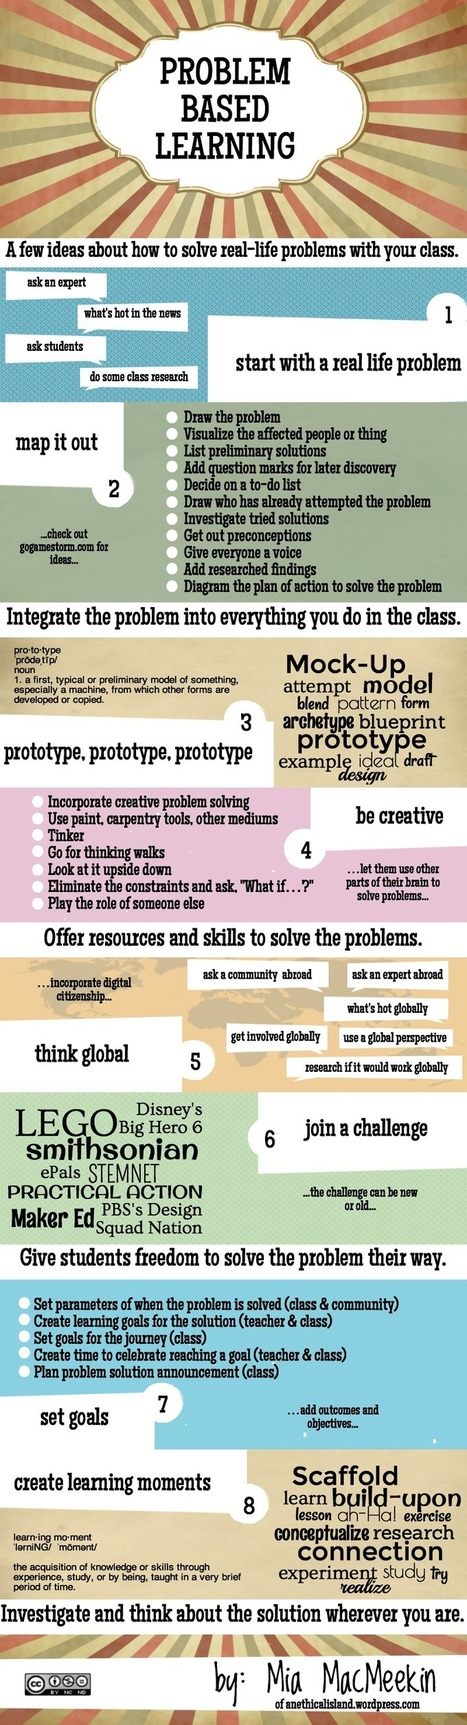 PBL- Let the Class Solve World Problems | Infographic | Metodologías competenciales | Scoop.it